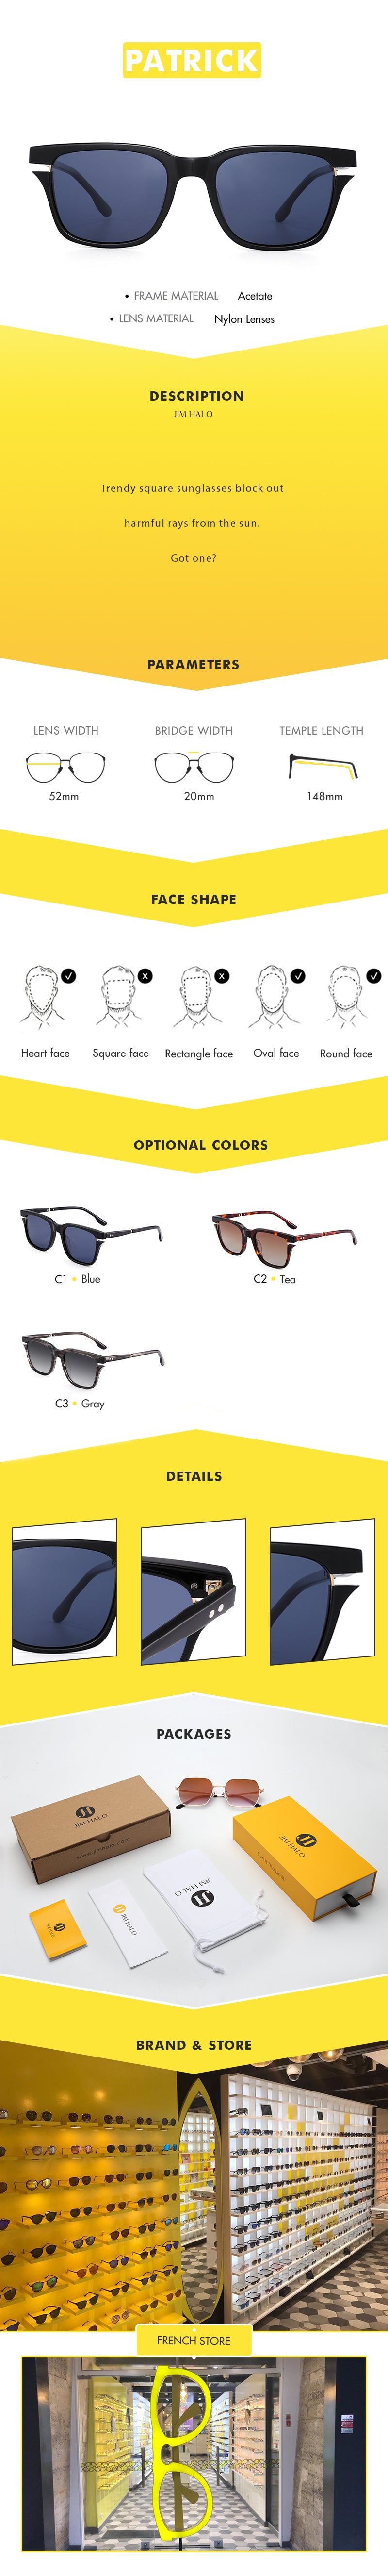 Trendy square sunglasses block out harmful rays from the sun.  Got one?